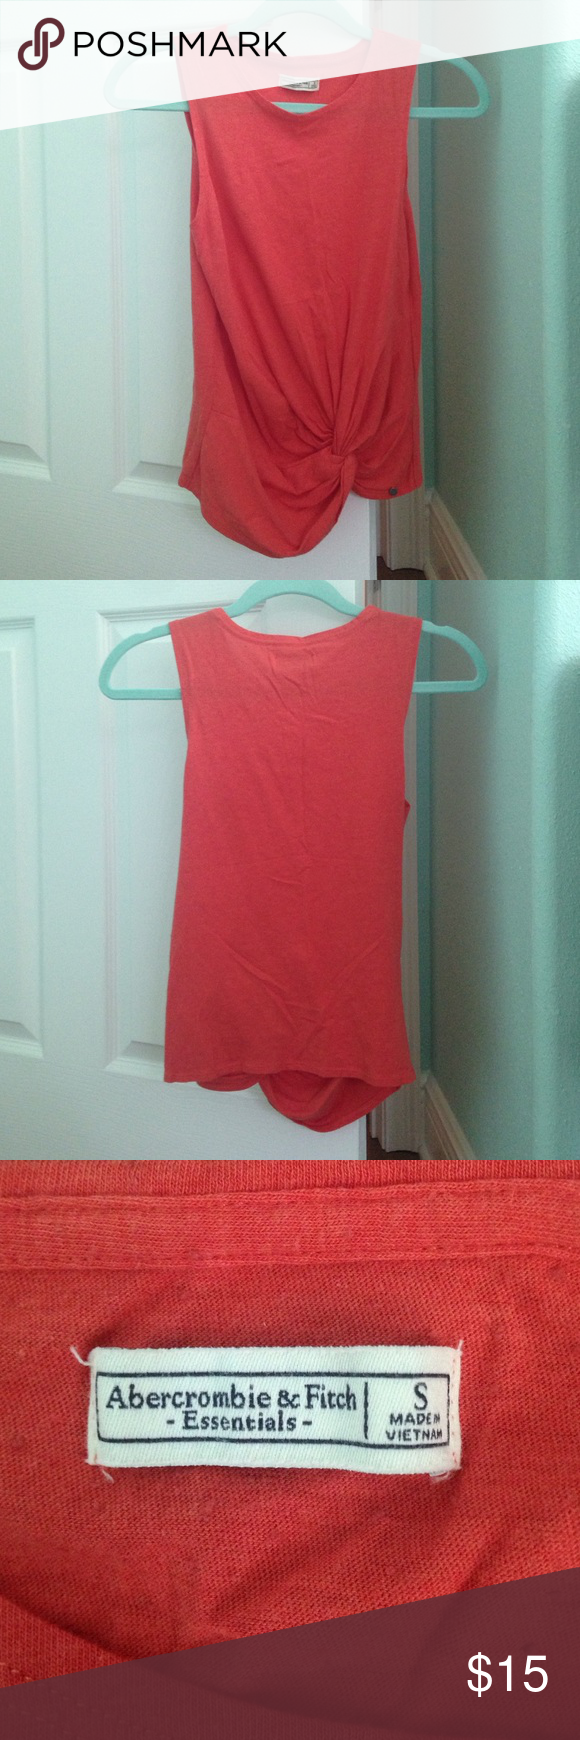 Casual top, is in great condition only worn once. The top is a orange/pink color, purchased from Abercrombie & Fitch. It is basically brand new (only been worn one time). It makes for a very cute outfit when paired with white or blue jeans. Abercrombie & Fitch Tops Tank Tops